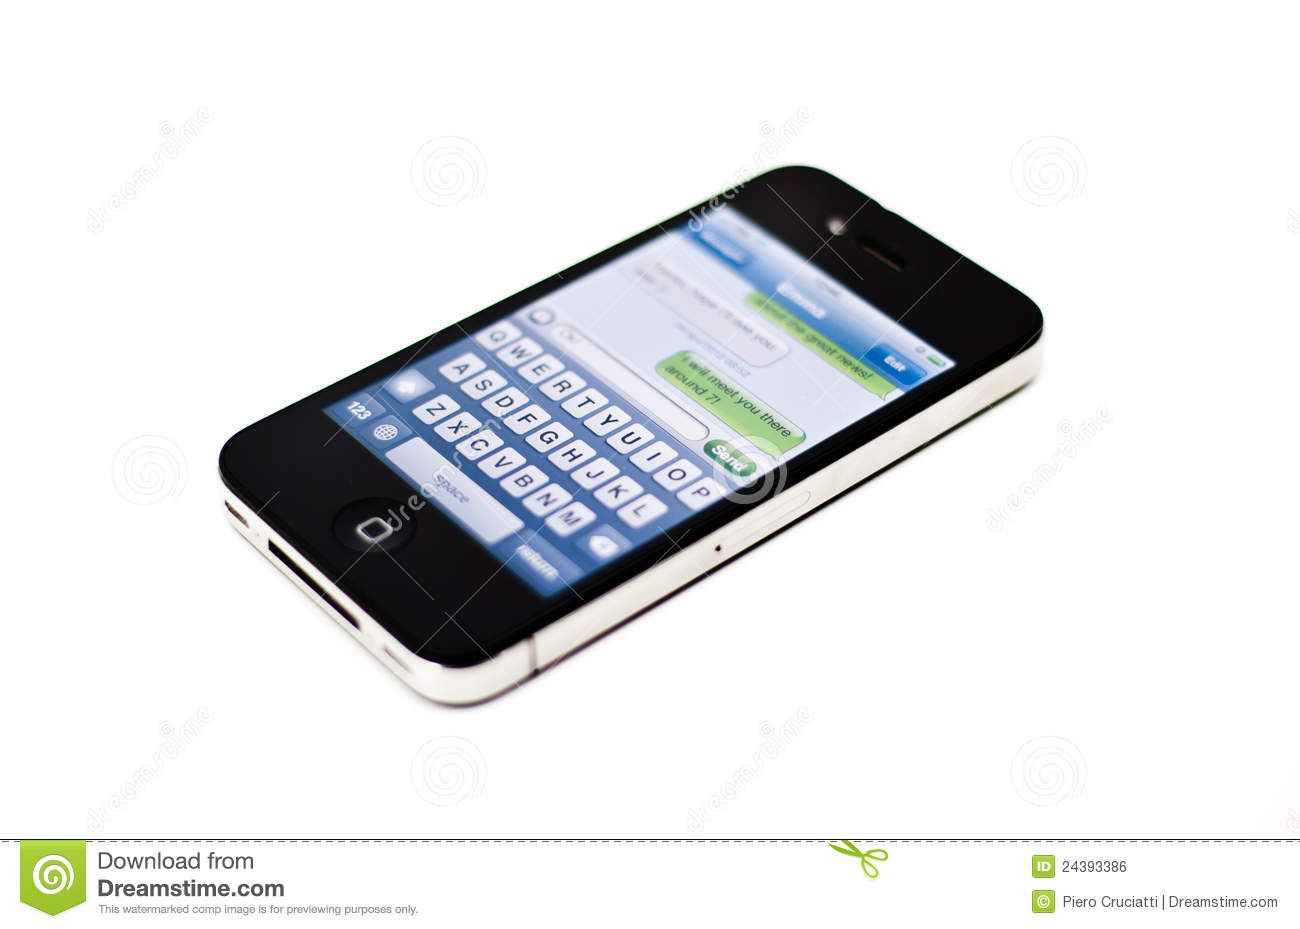 How to download texts from cell phone